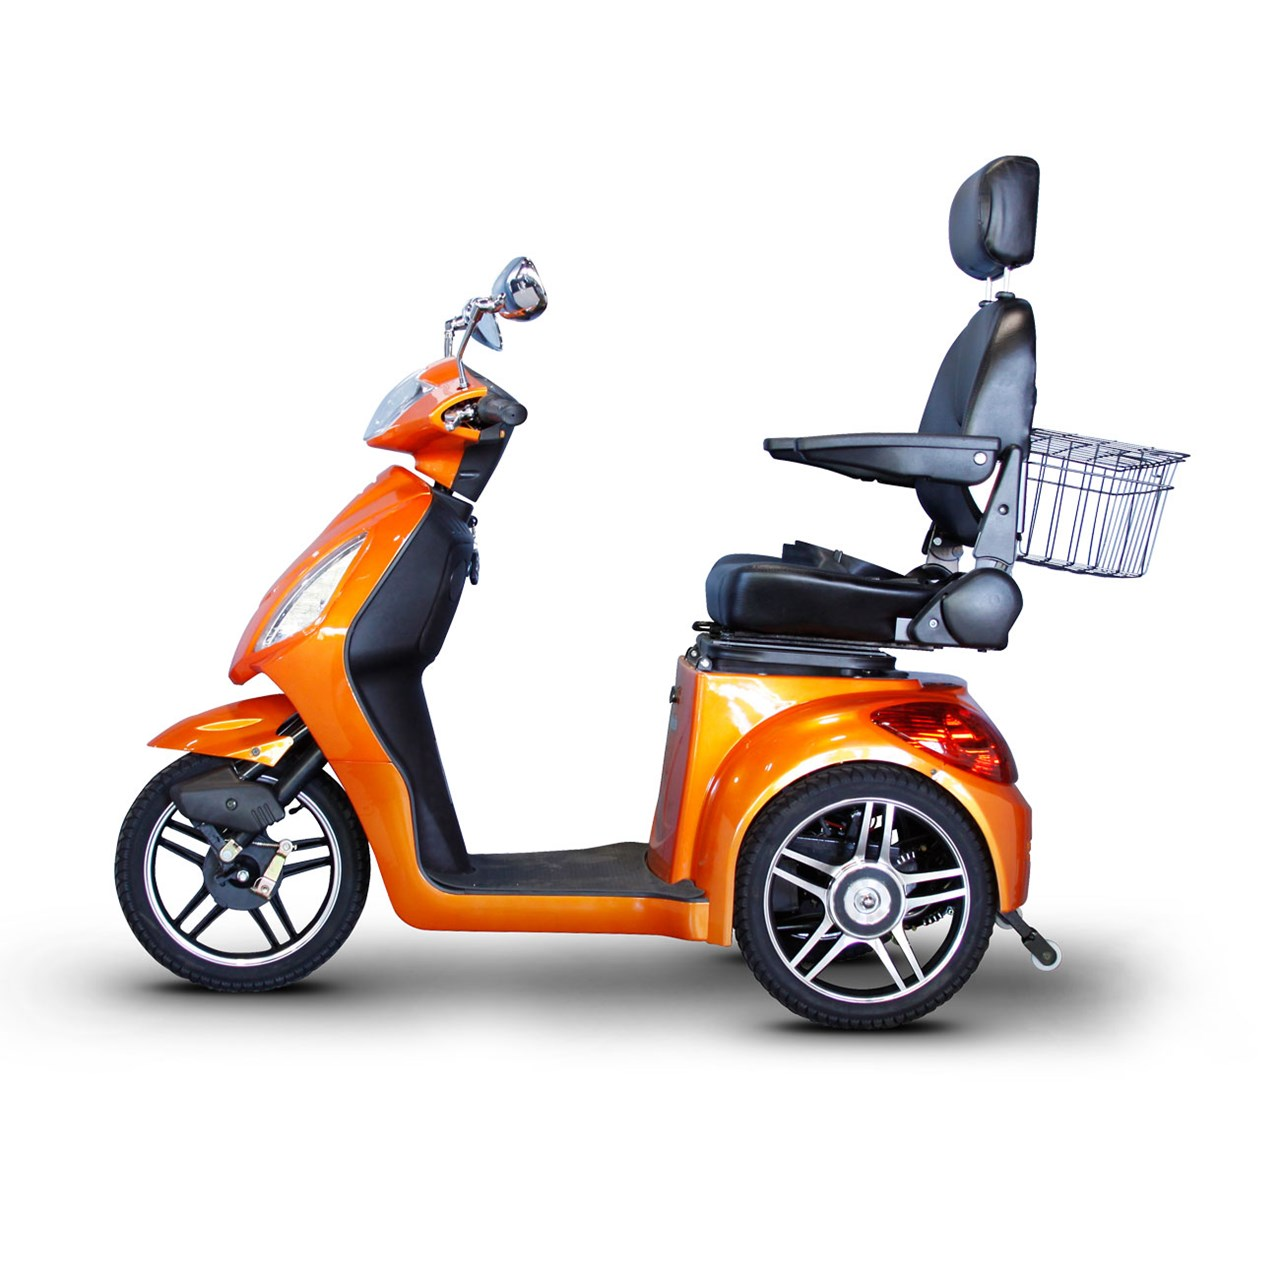 0015663 e wheels ew 36 3 wheel electric senior mobility scooter orange electric scooter wiring diagrams pinout diagrams wiring diagram ew 36 wiring diagram at soozxer.org